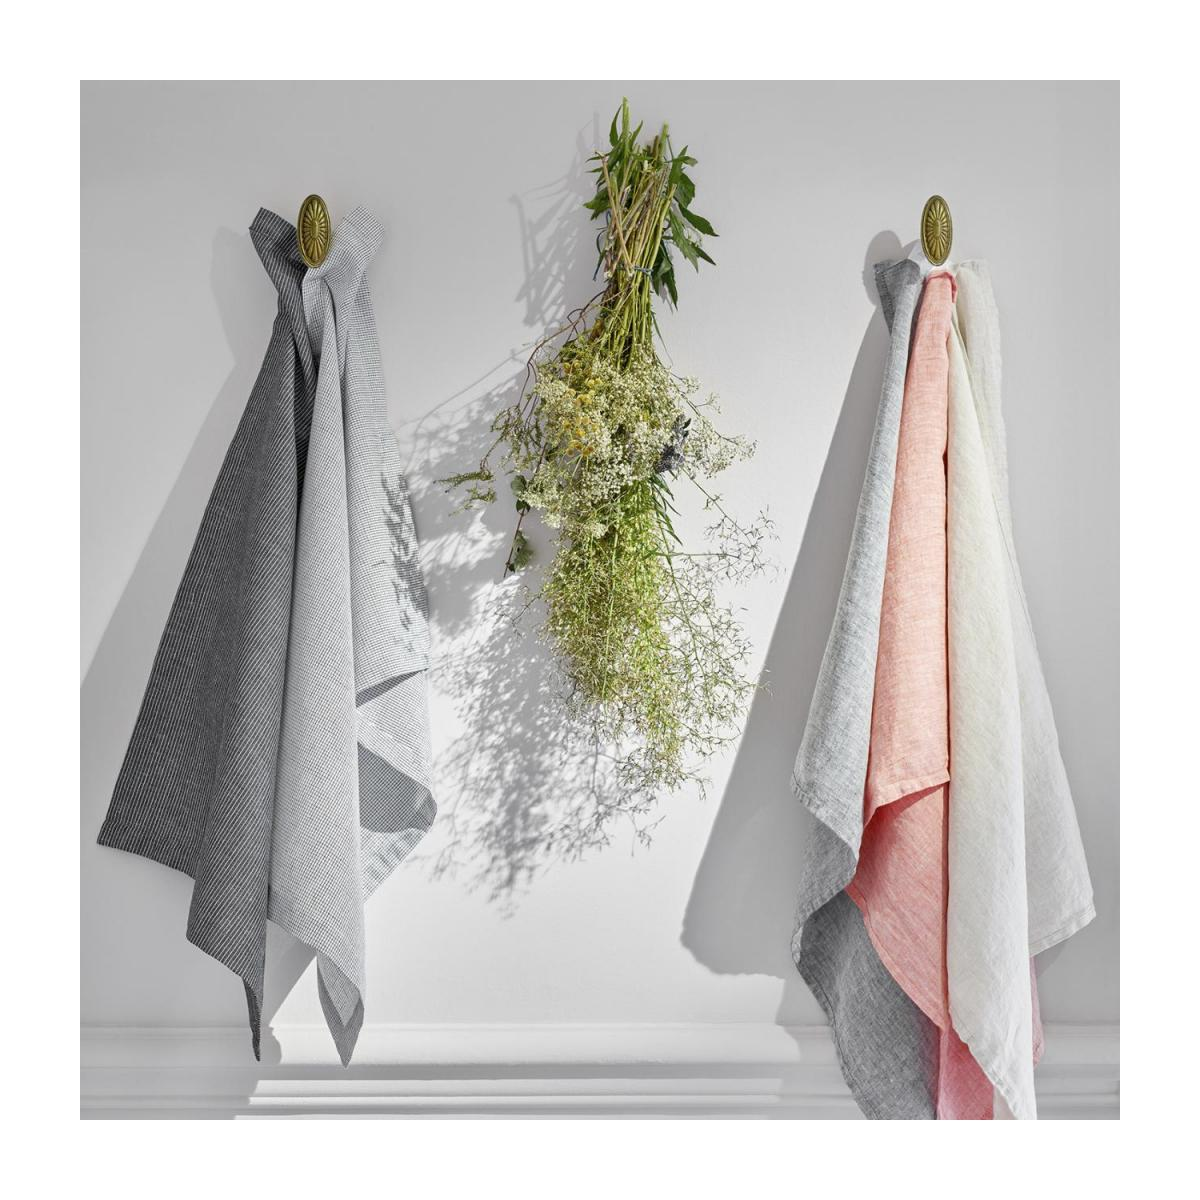 Kitchen towel 50x70cm made of flax, grey n°2